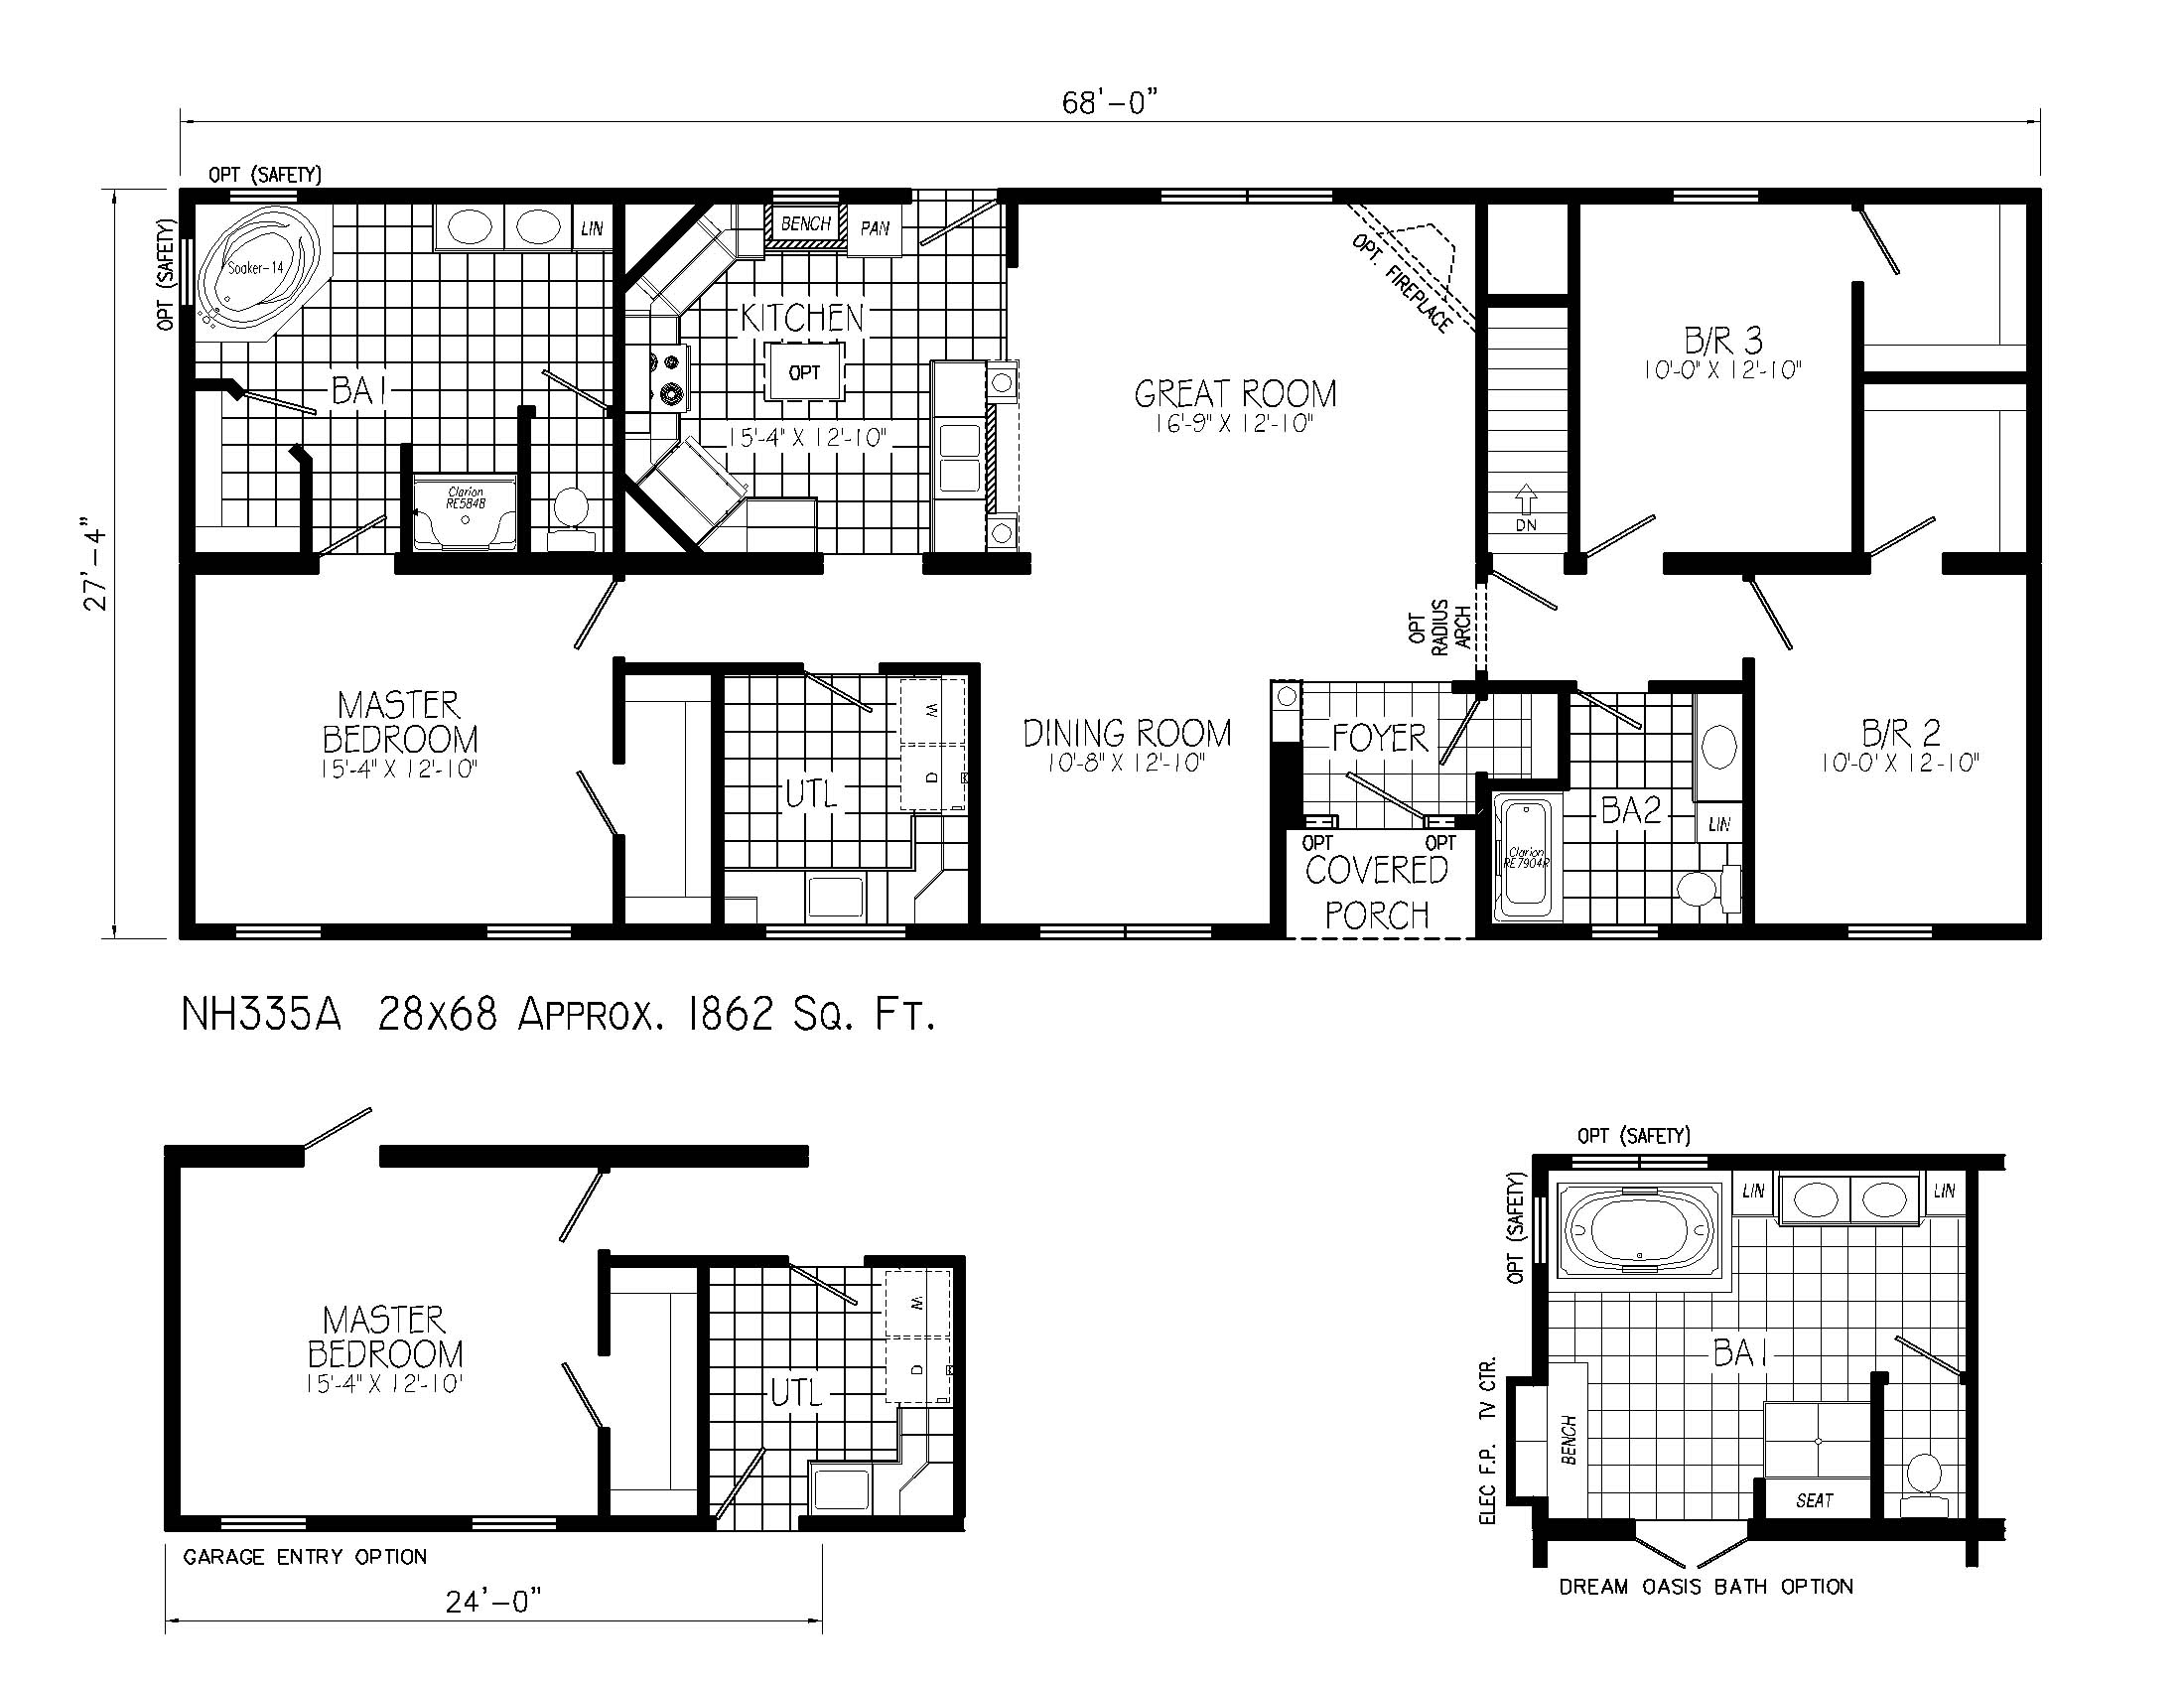 Tiny House Little Cottage together with 570690584006954797 in addition House Plans 600 Square Feet also 3d House Design Building Plans Harare Zimbabwe likewise House Floor Plans One Bedroom. on texas home tiny cottages